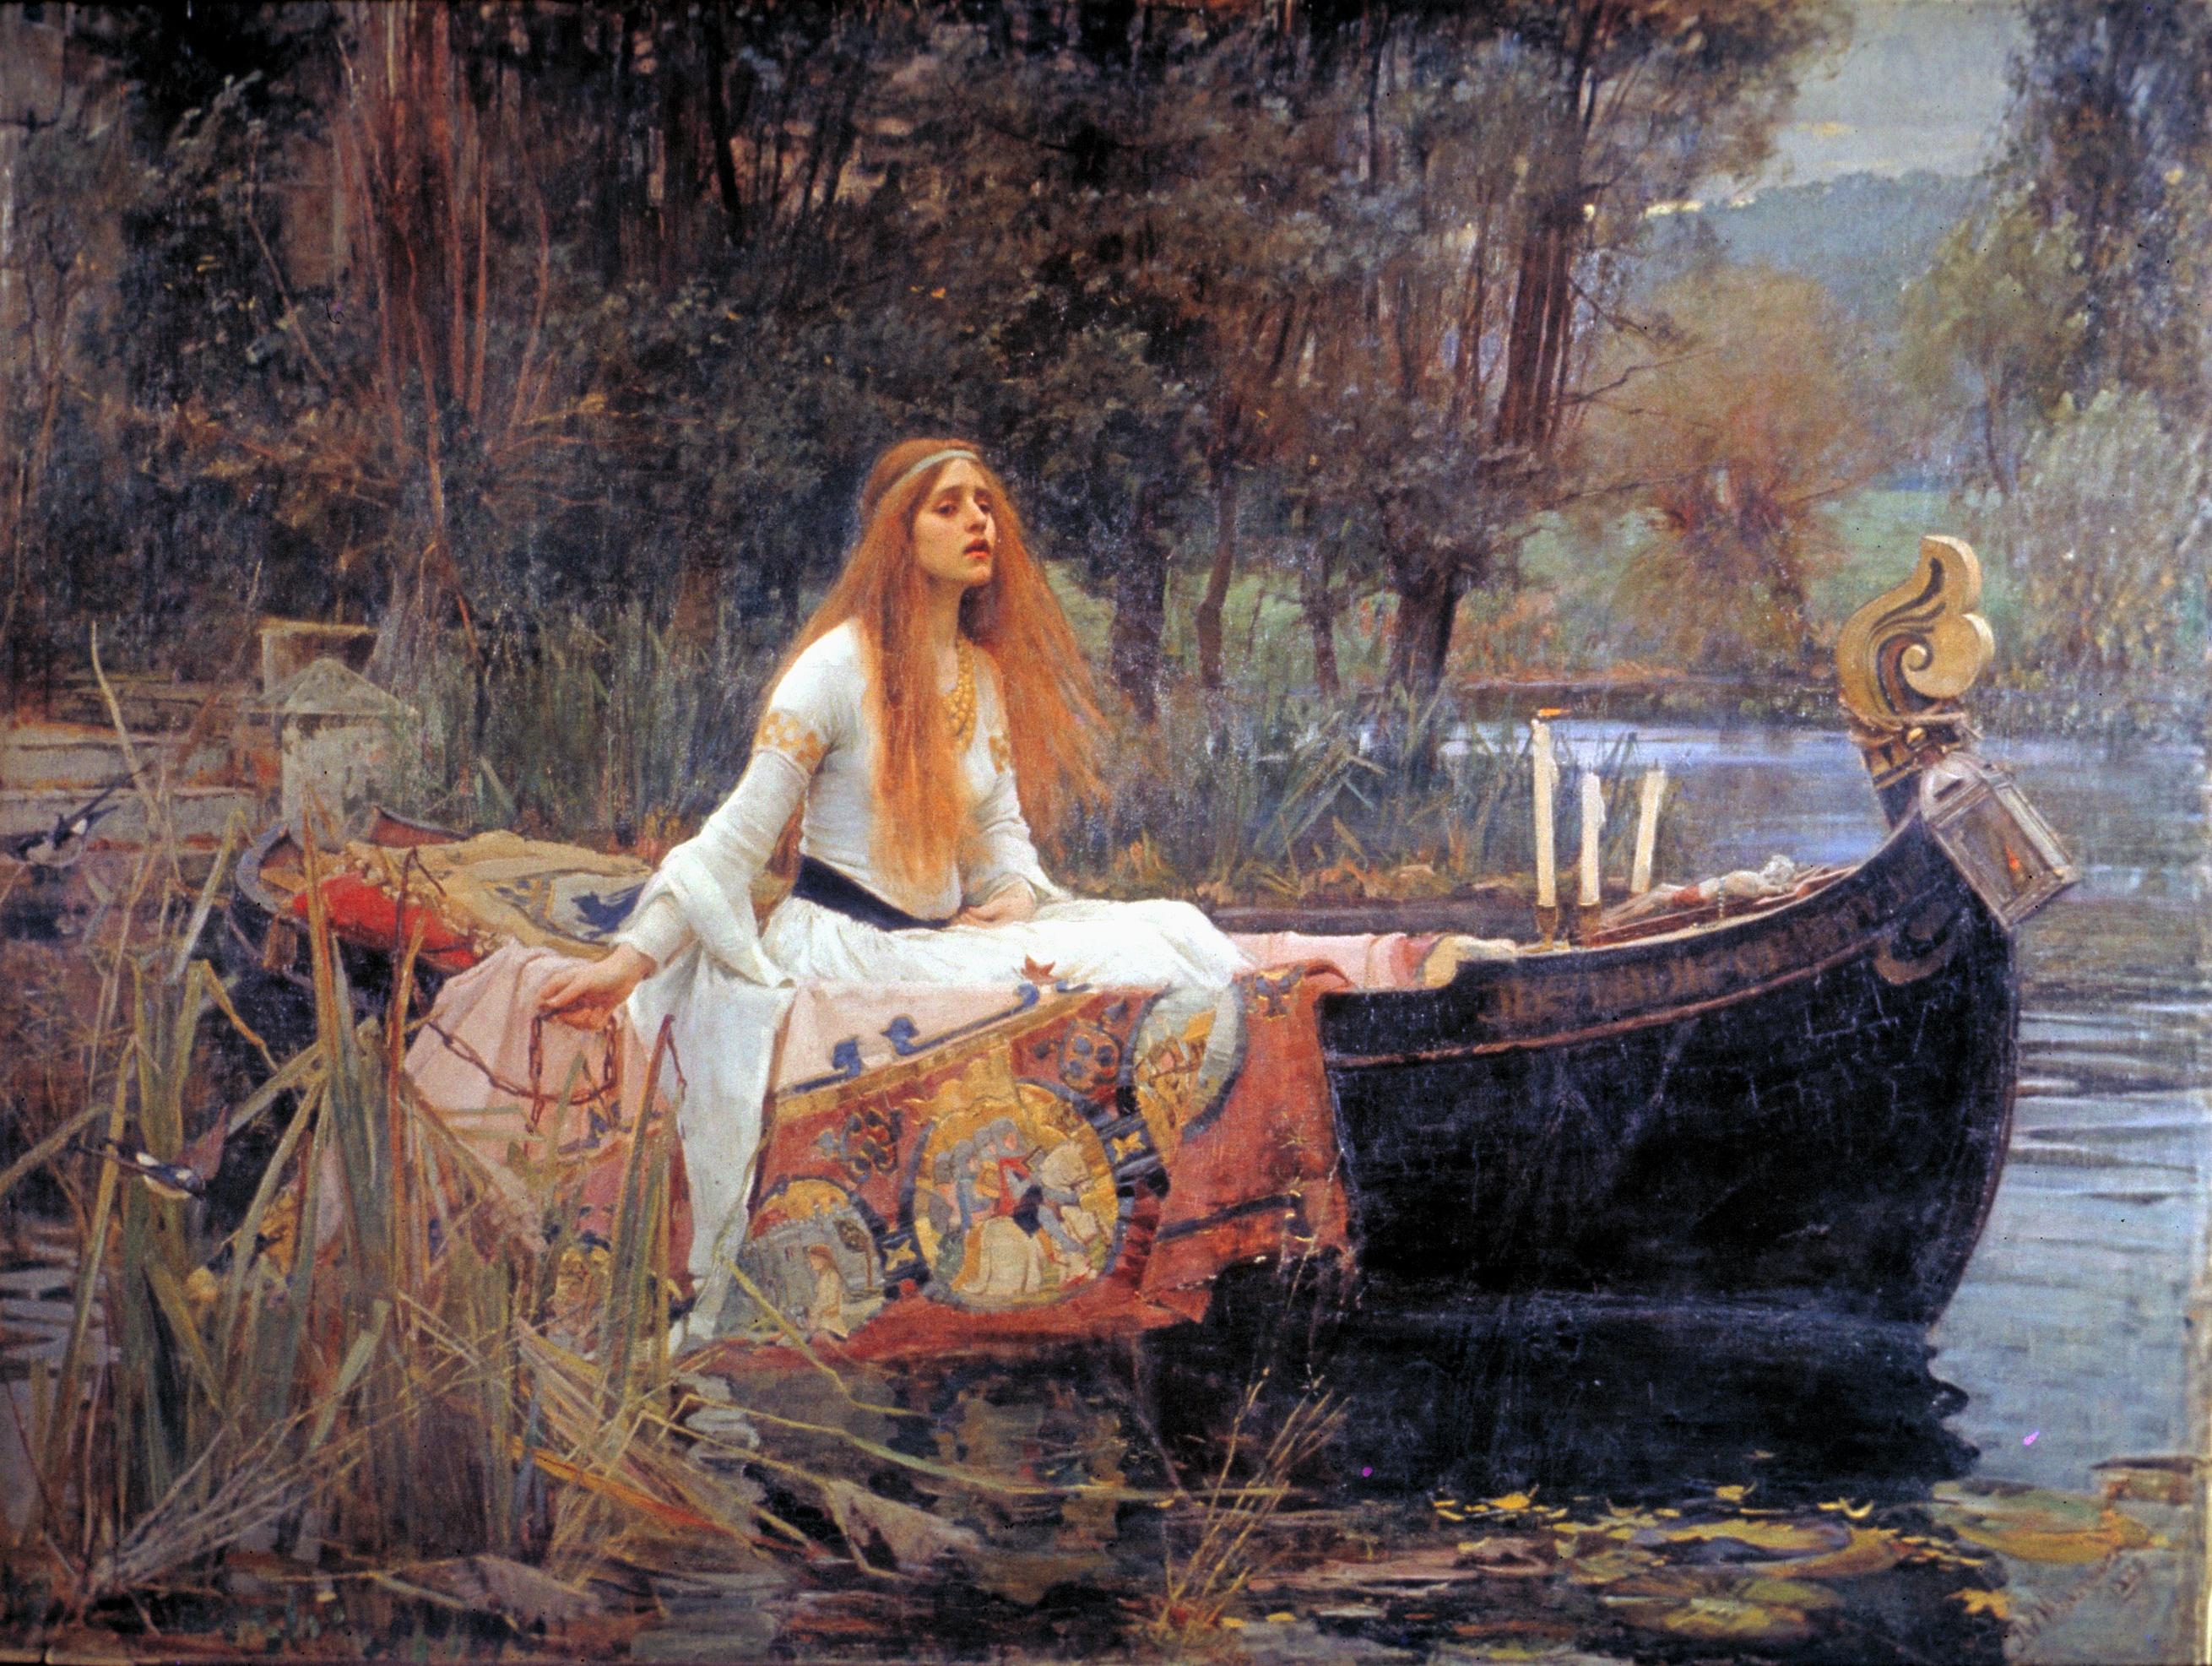 http://upload.wikimedia.org/wikipedia/commons/7/70/John_William_Waterhouse_The_Lady_of_Shalott.jpg